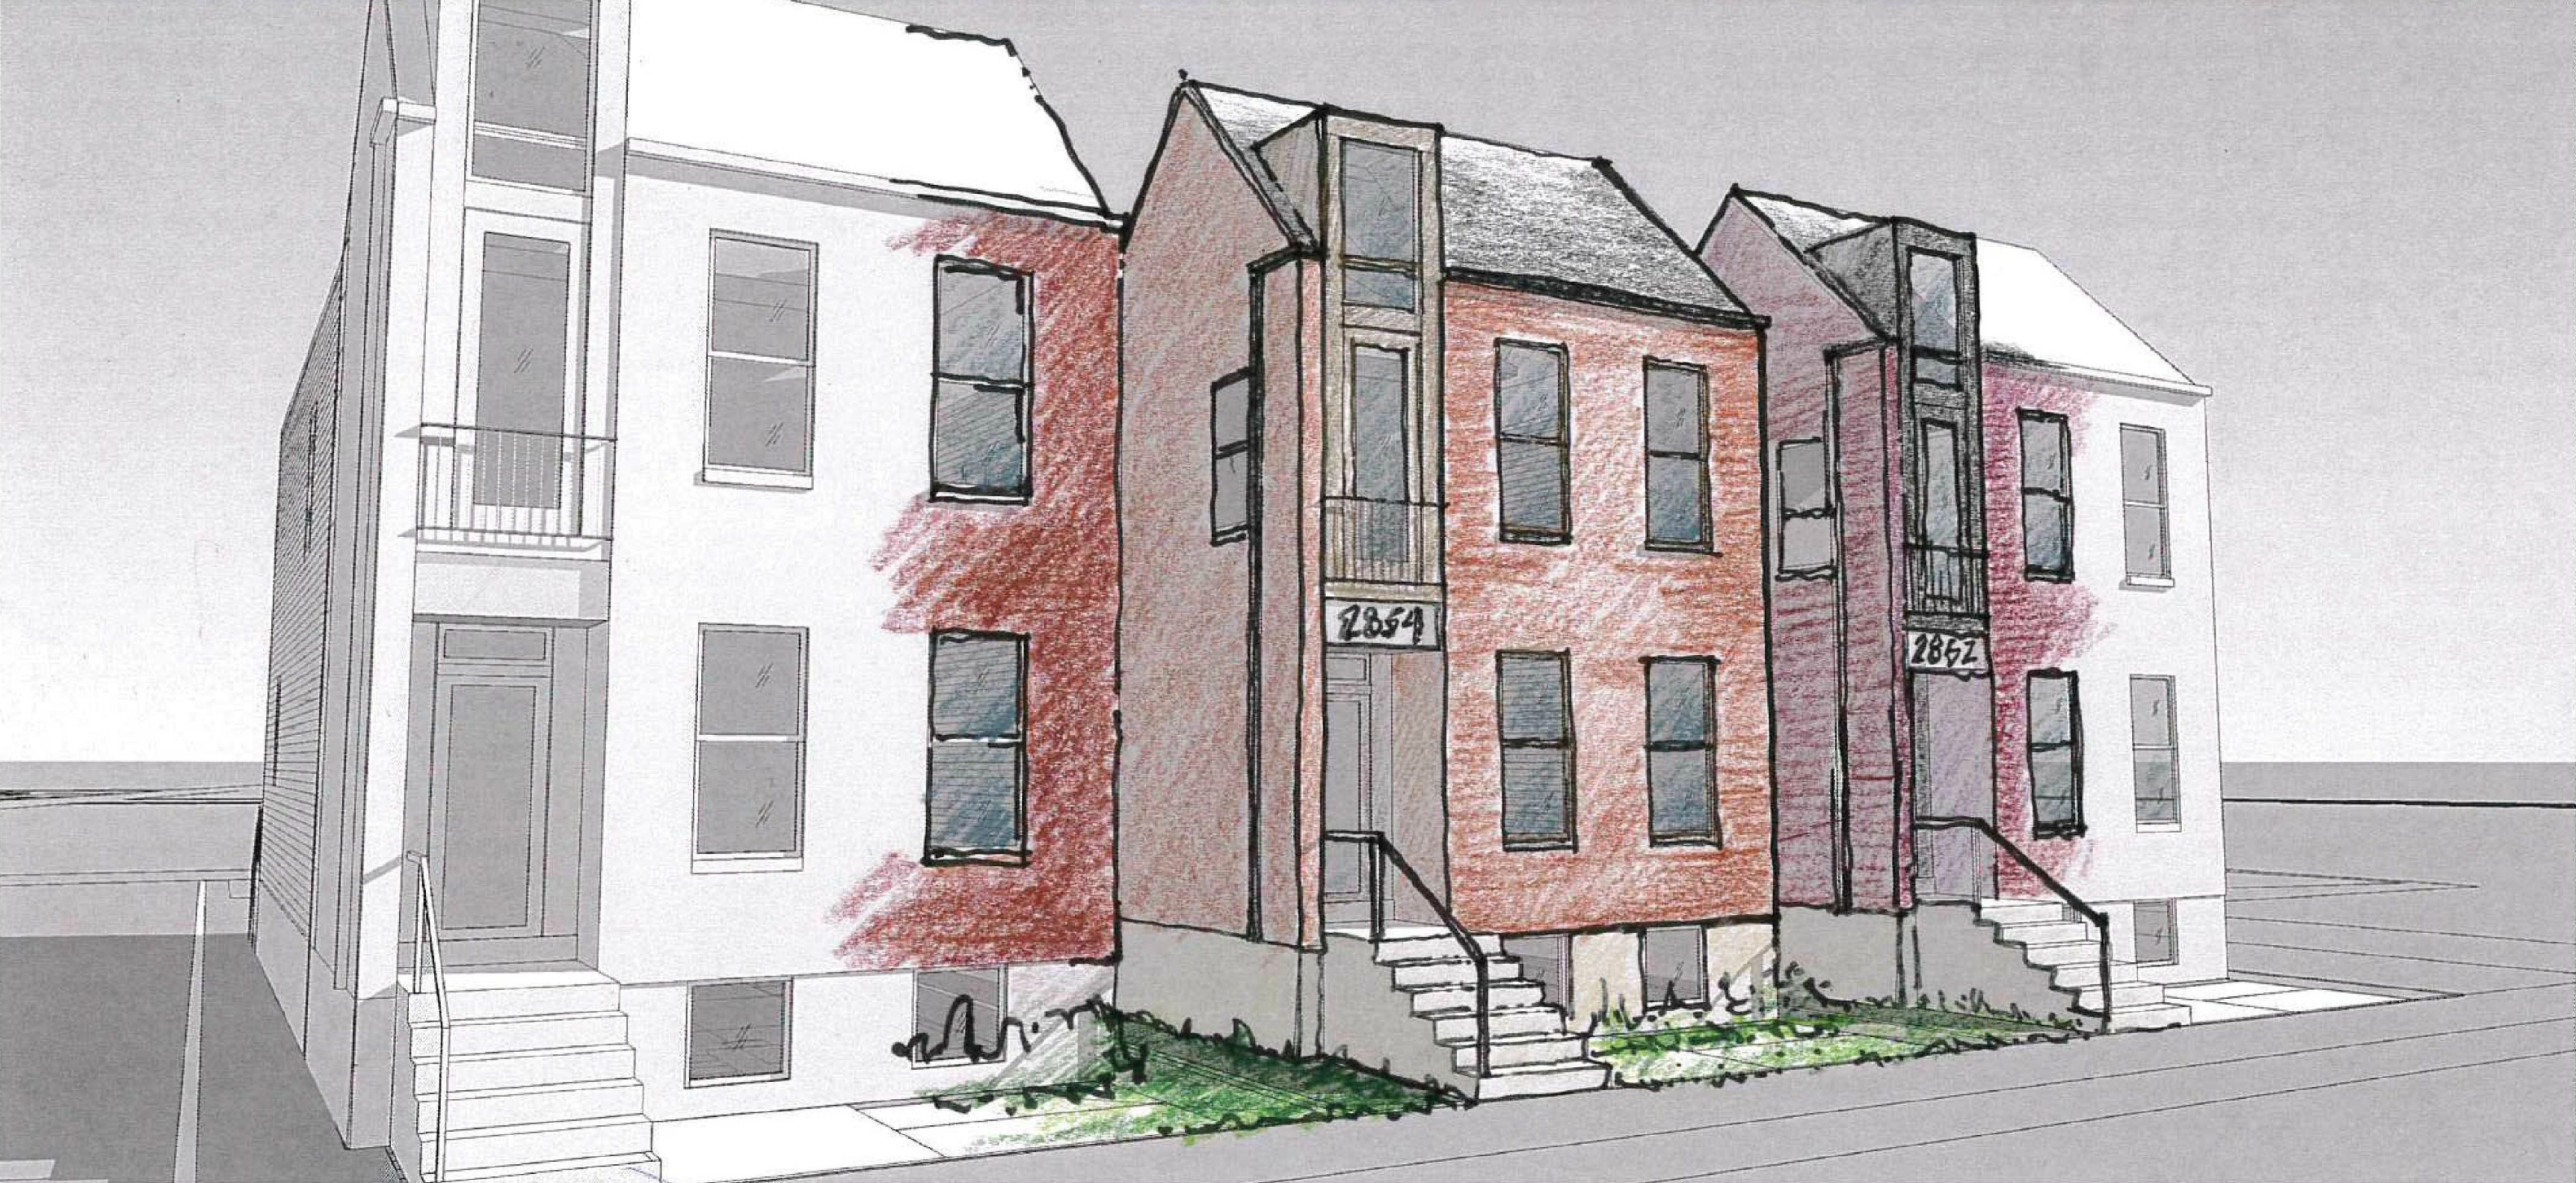 Benton Park Historic District Infill by UIC Gets Go Ahead